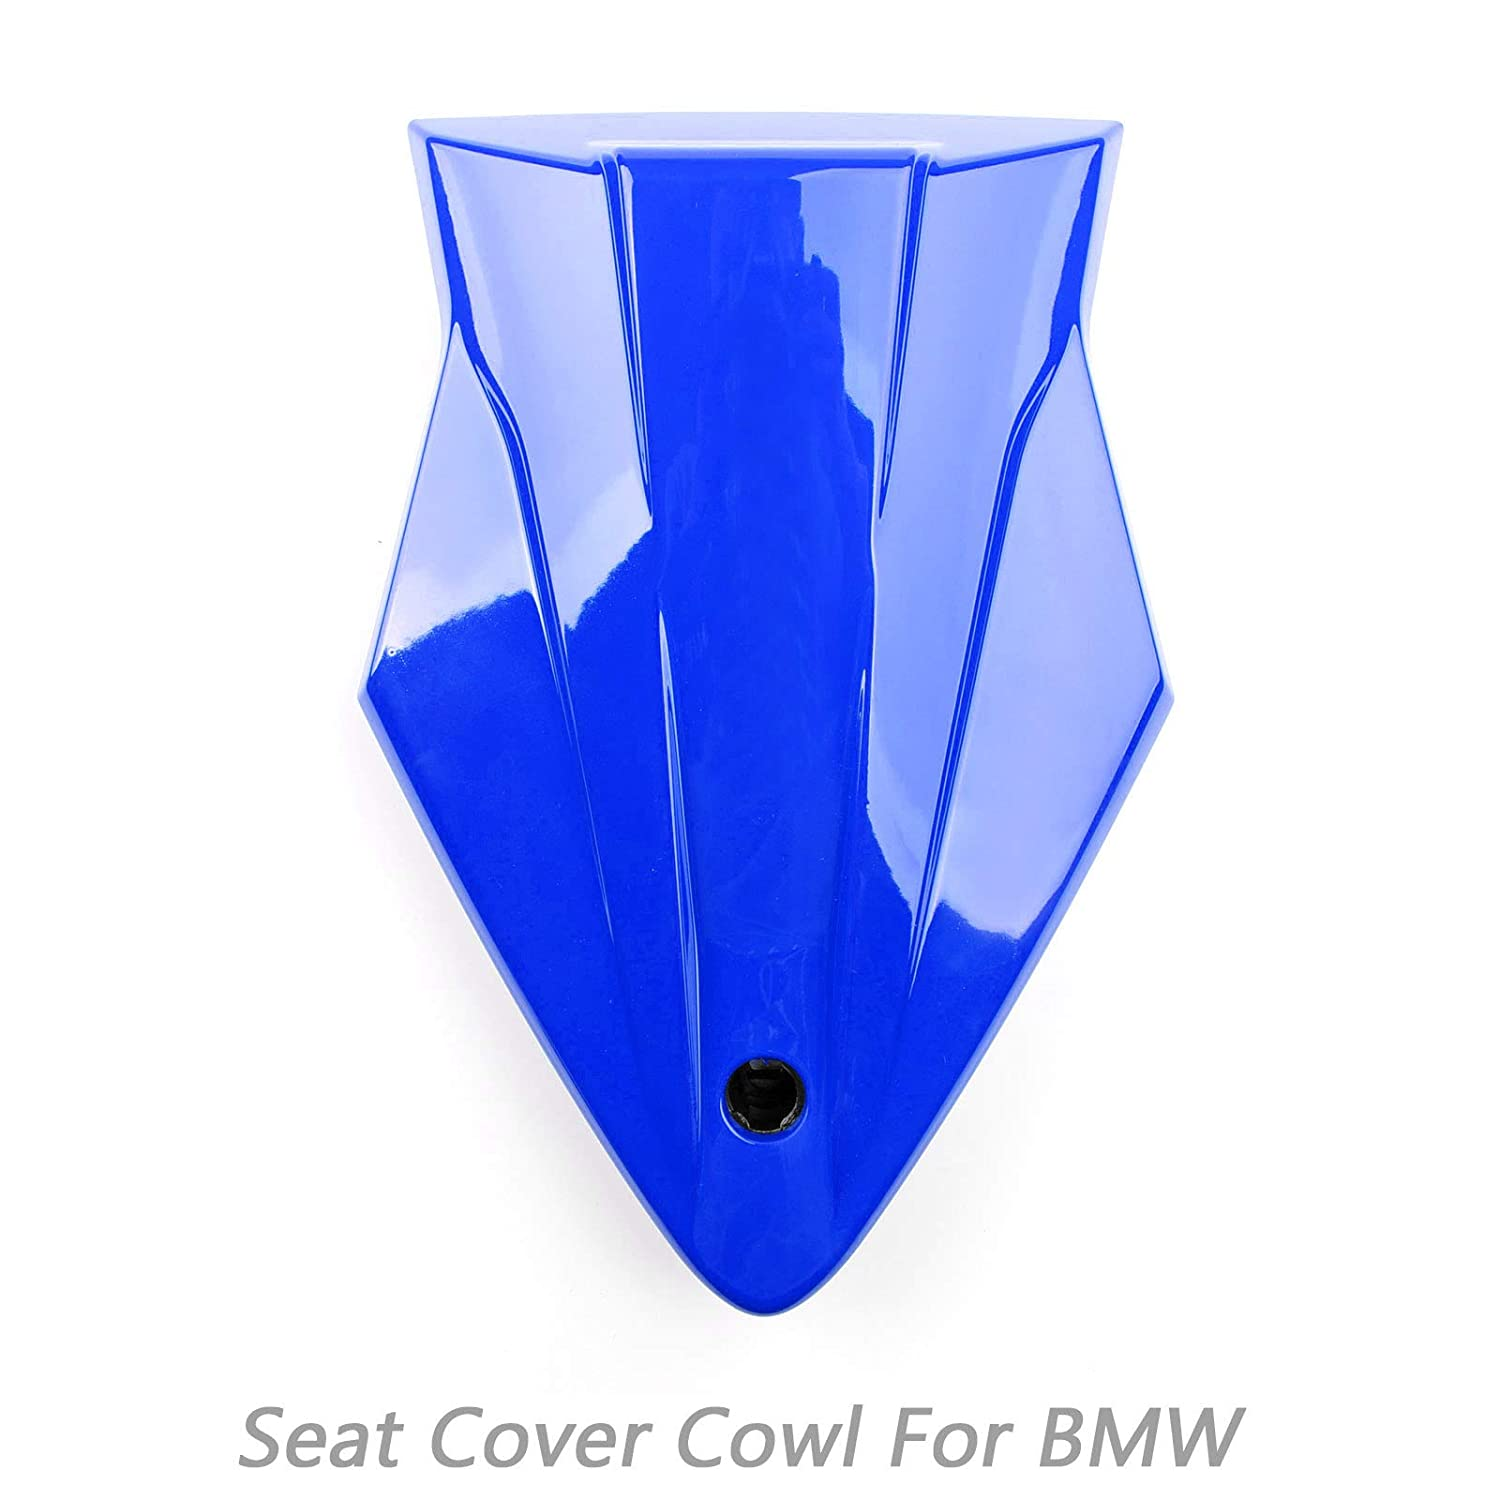 Motorcycle Seat Cowl Fairing Tail Cover for B M W S1000RR K46 2015-2018 S1000R K47 2013-2018 Artudatech Motorbike Rear Seat Cover Cowl Passenger Pillion